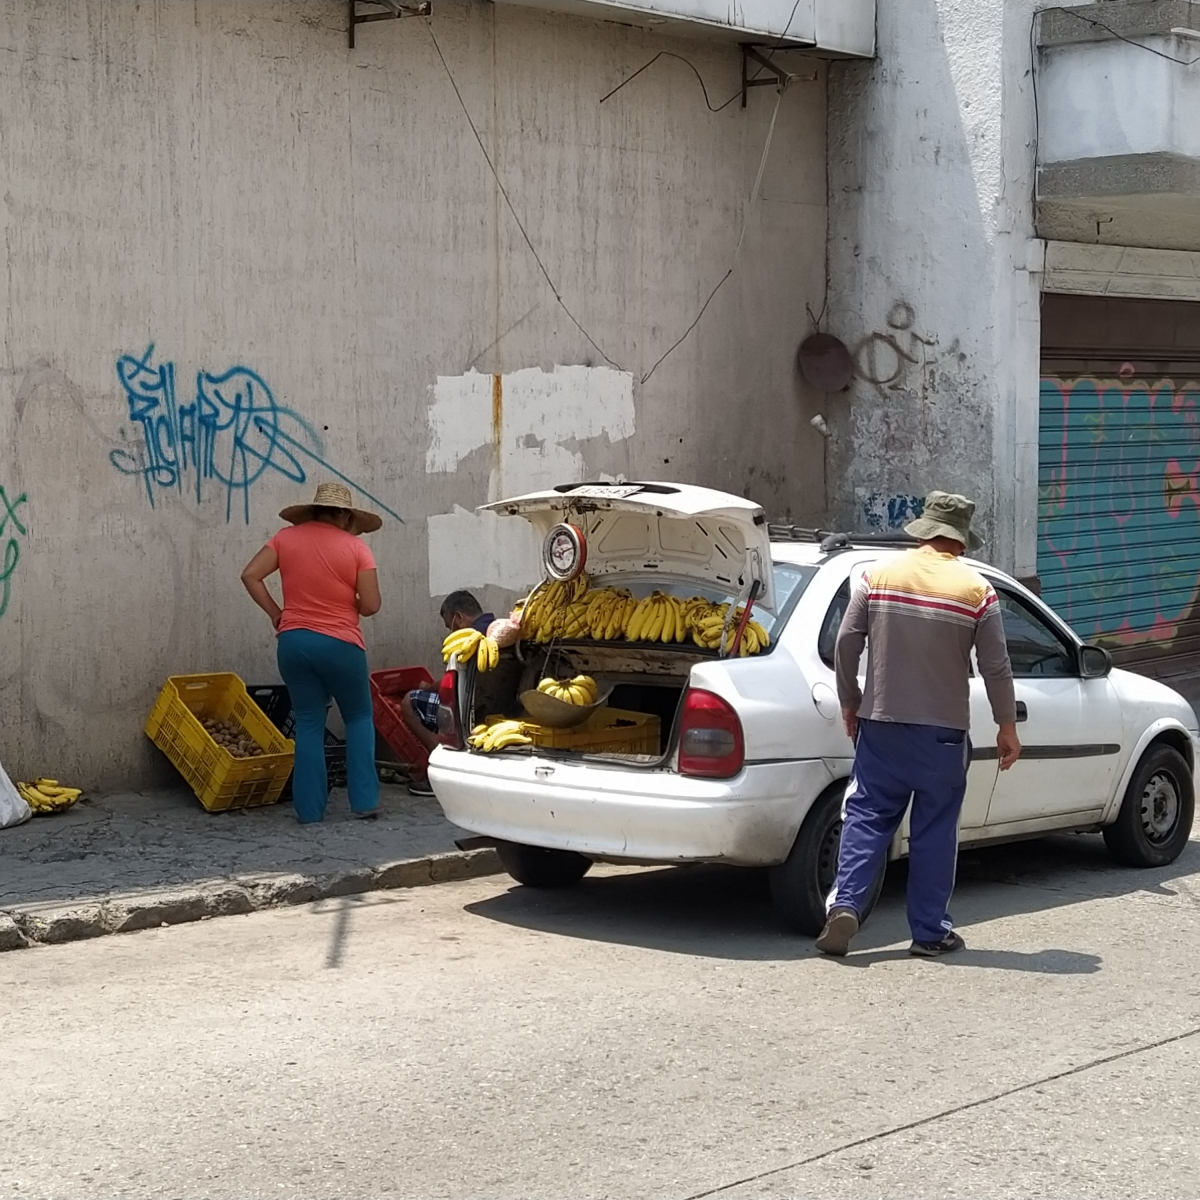 Informal food sellers could also be seen during the lockdown, albeit in a lesser number than usual. (Paul Dobson / Venezuelanalysis)